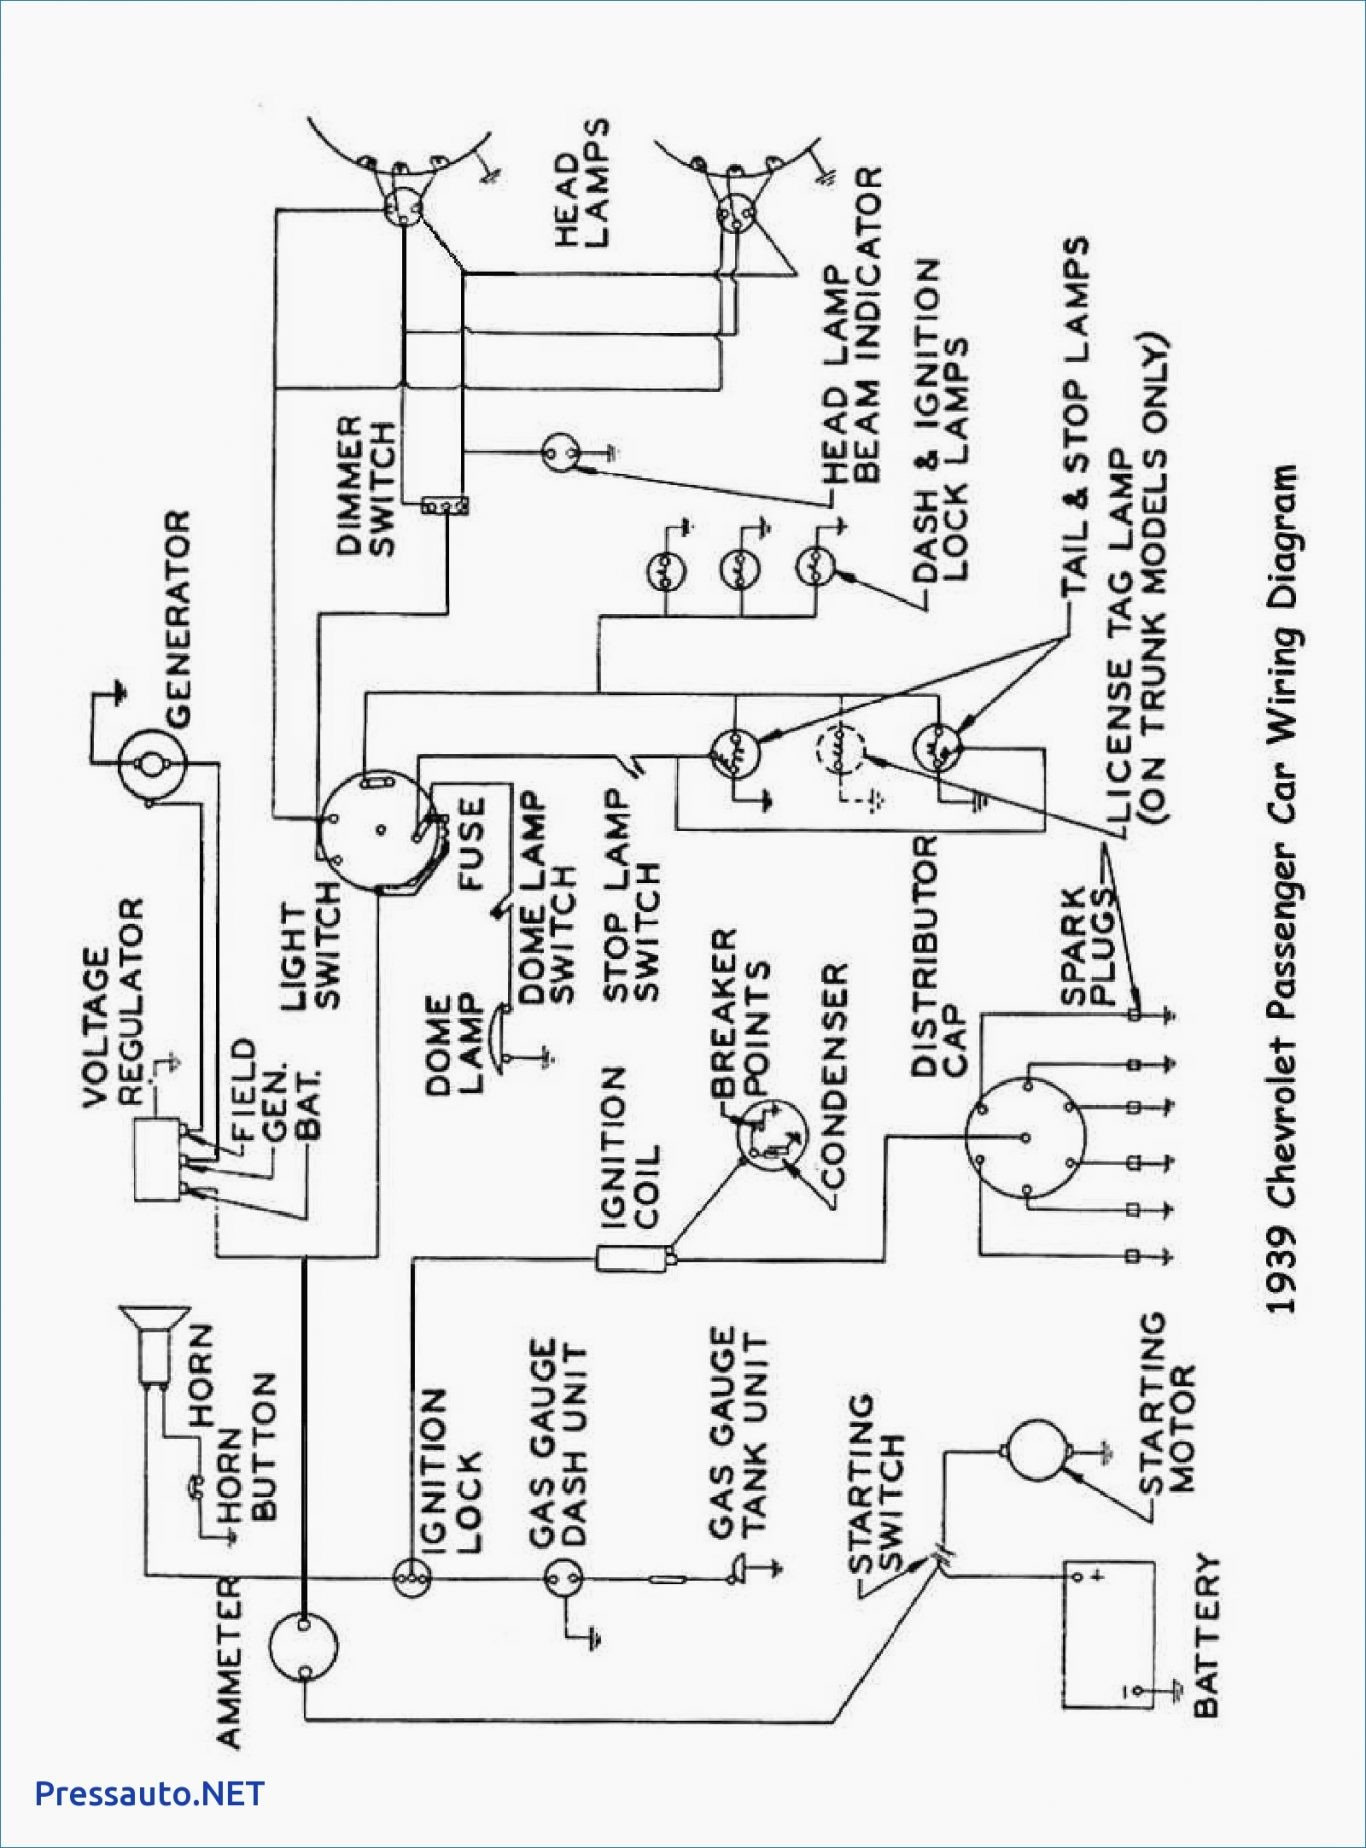 The Best Free Wiring Drawing Images Download From 50 Free Drawings Of Wiring At Getdrawings